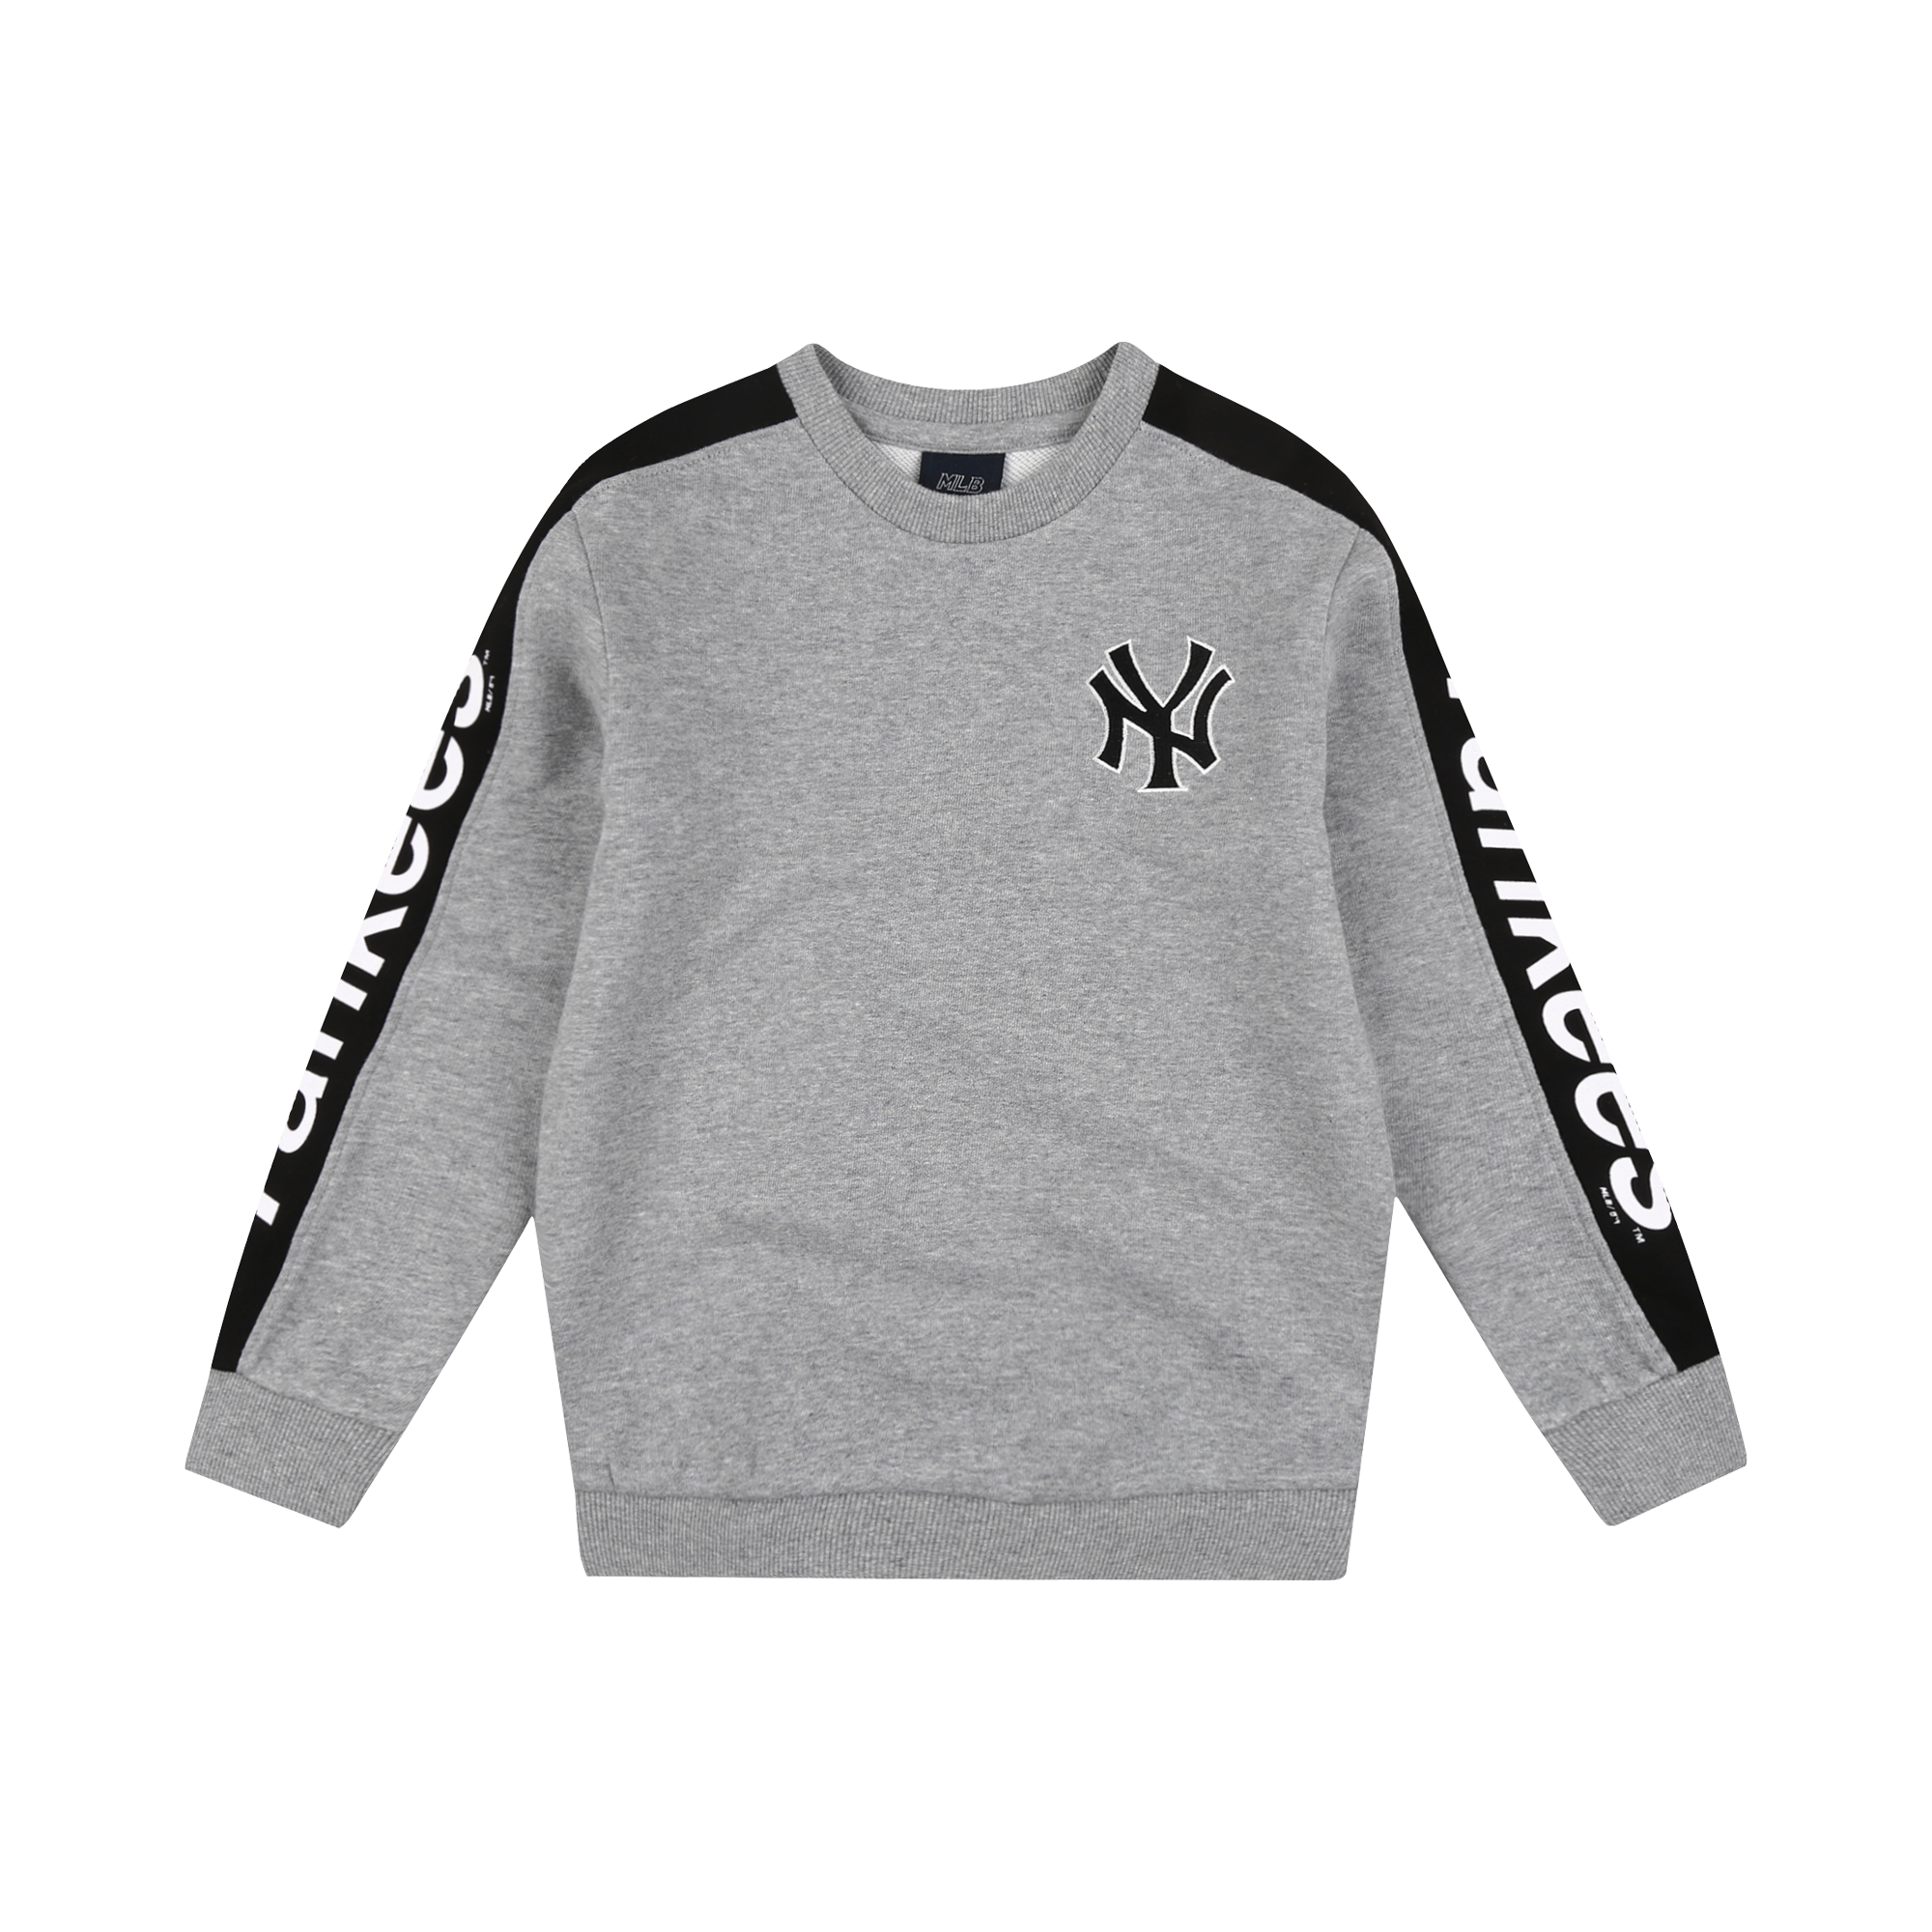 NEW YORK YANKEES UNISEX SLEEVE LOGO SWEATSHIRT